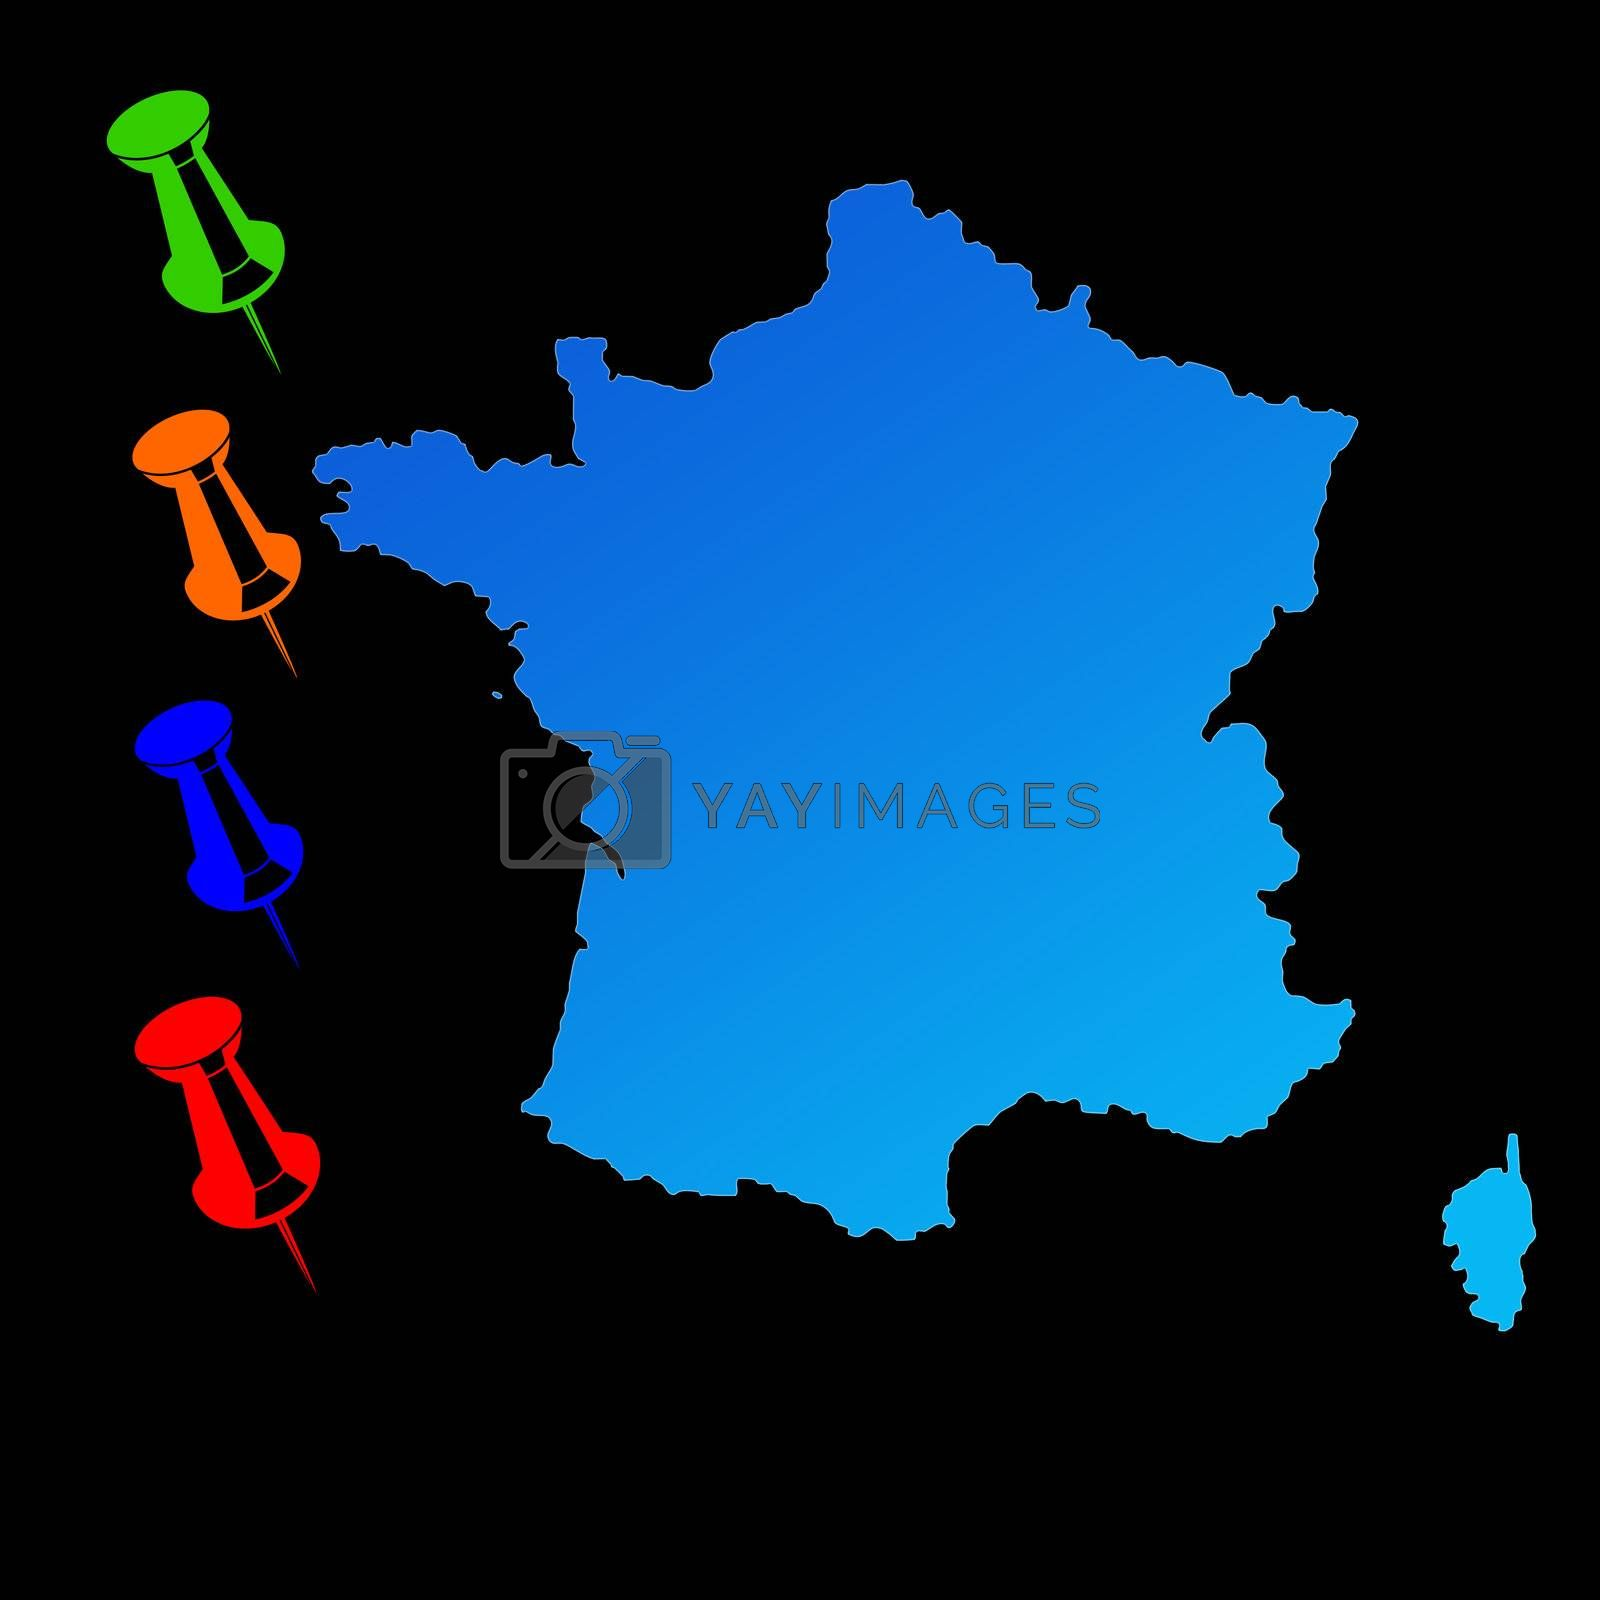 France travel map with push pins on black background.